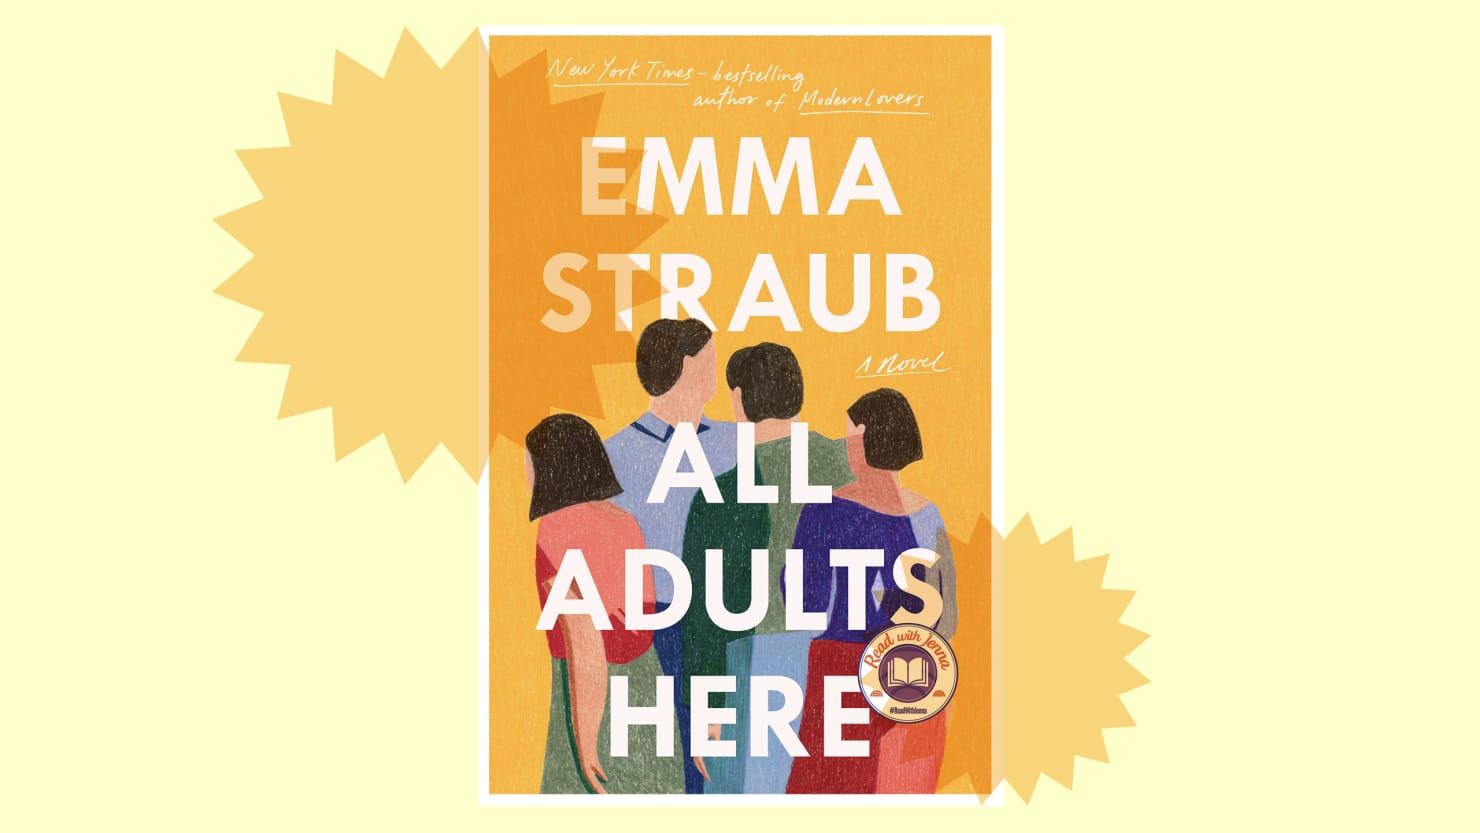 Emma Straub, Author of All Adults Here, Recommends...